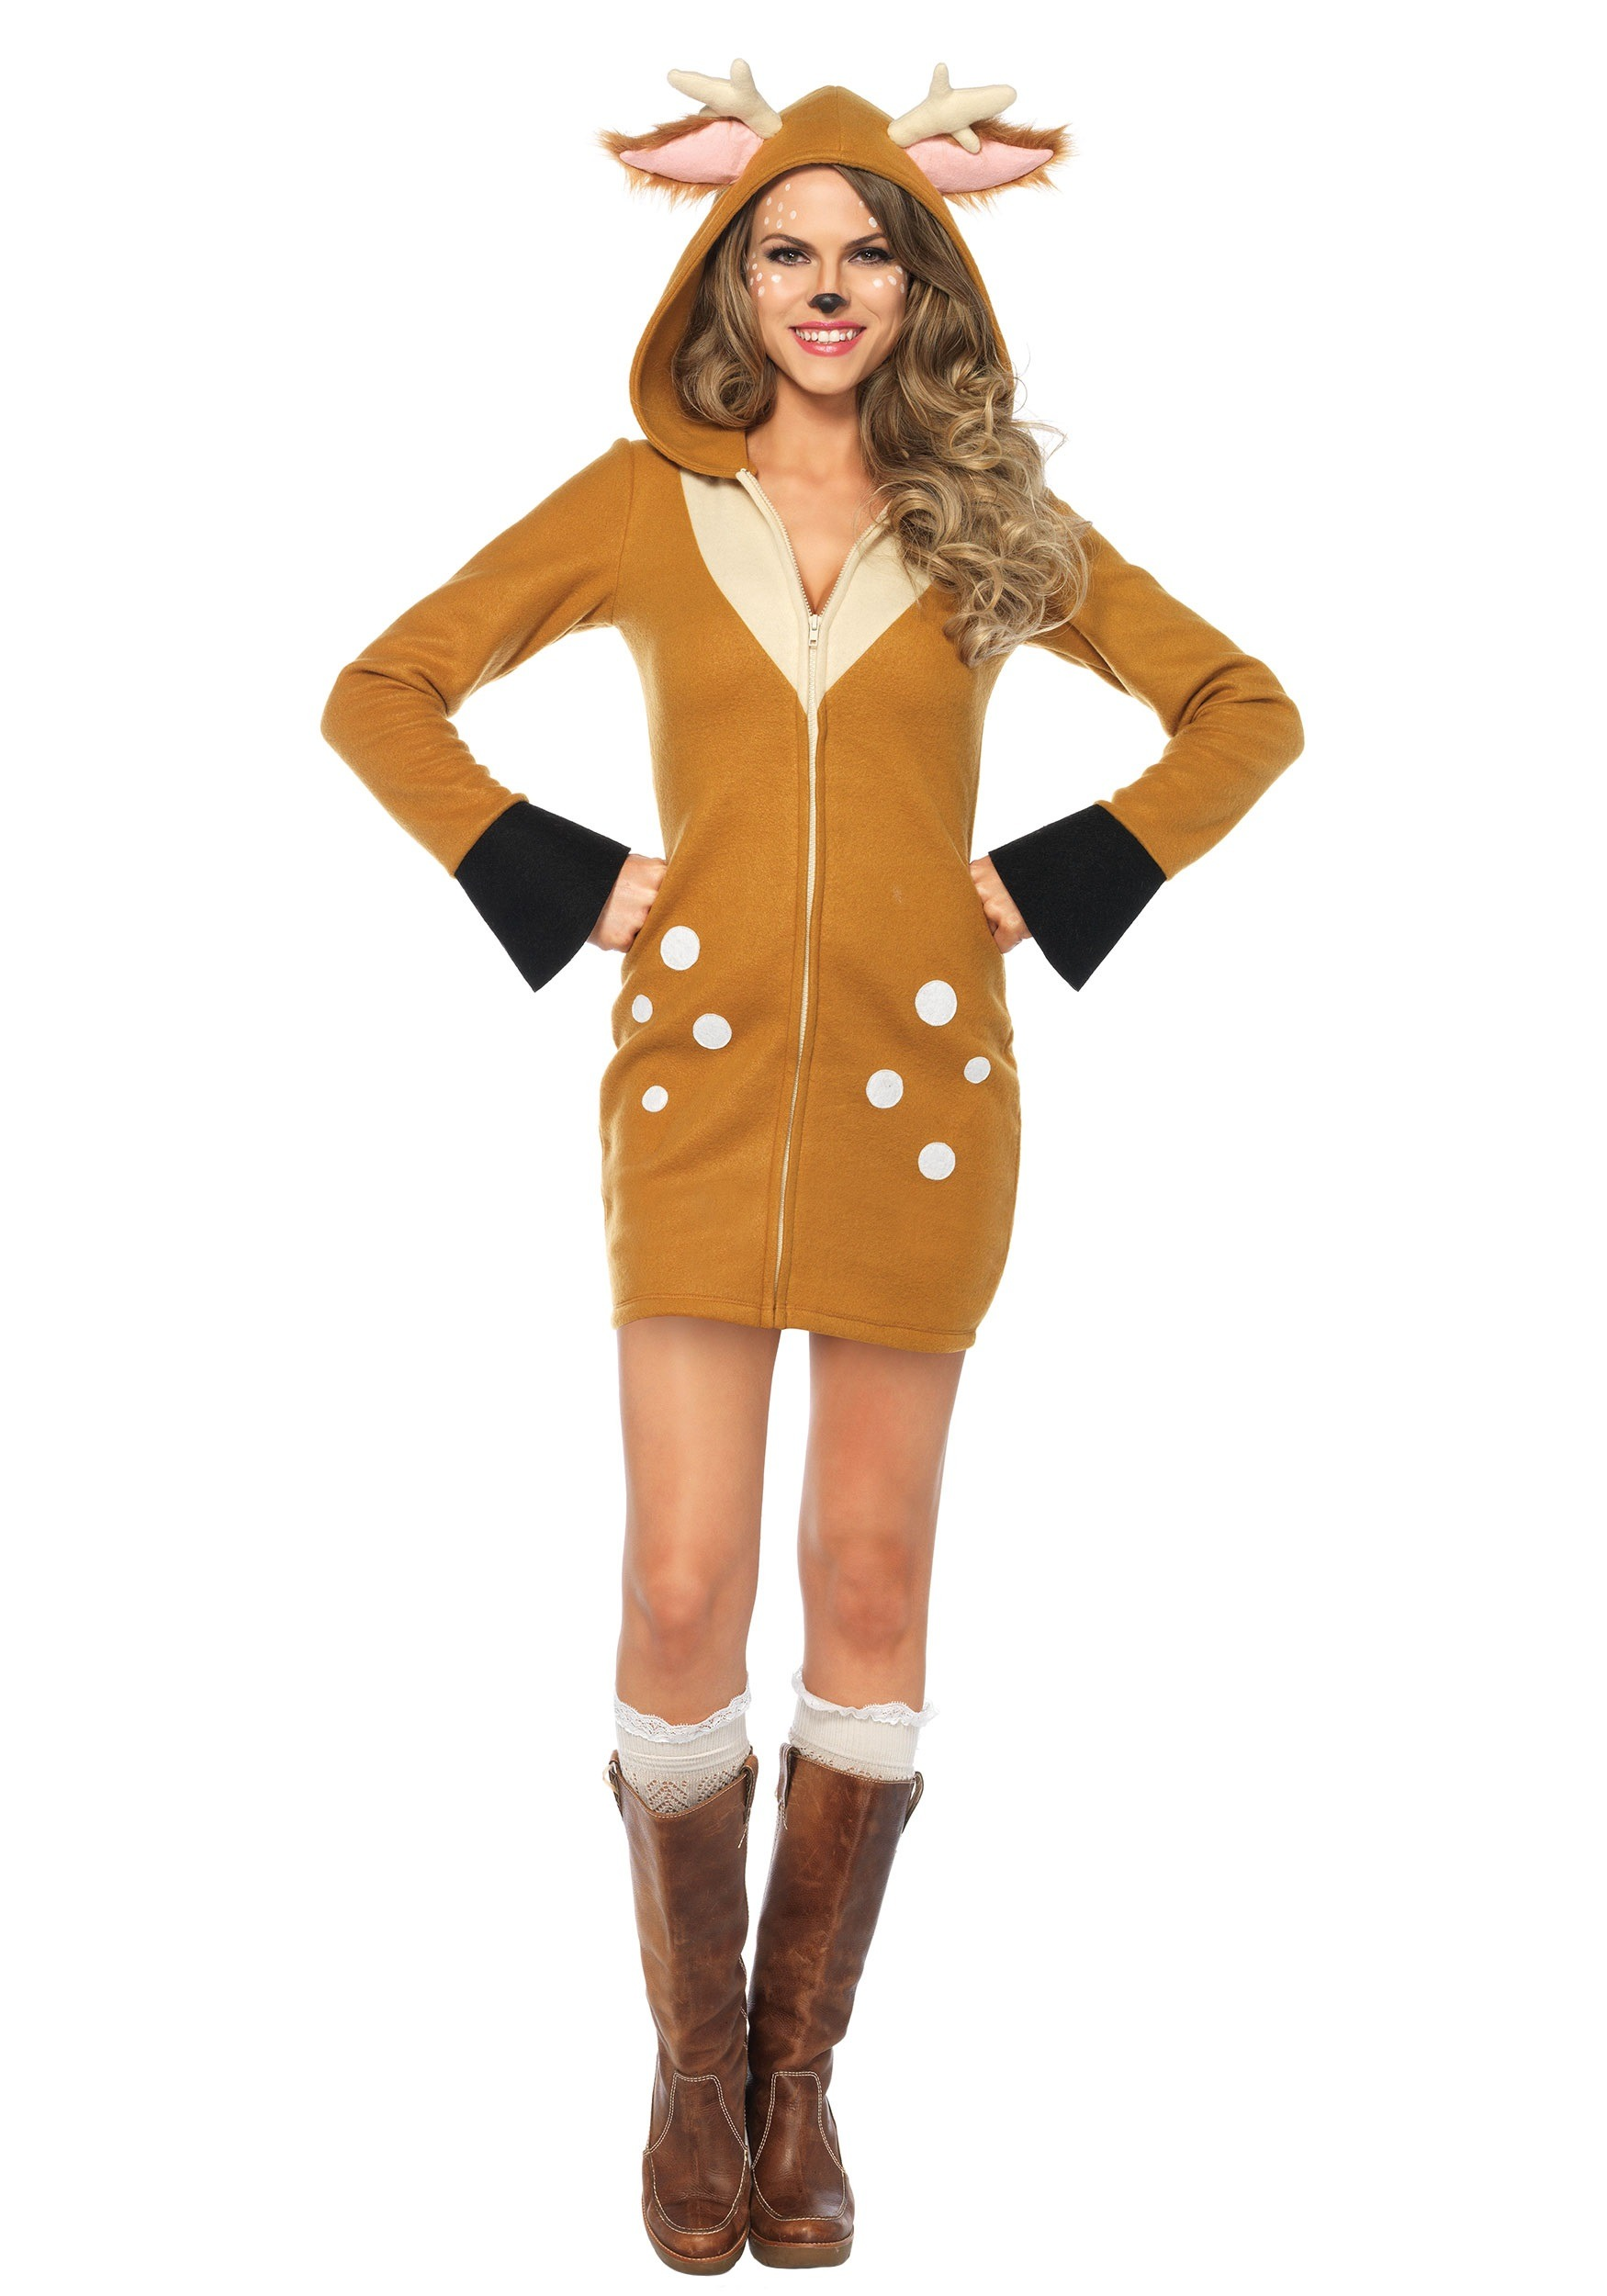 women 39 s cozy fawn costume. Black Bedroom Furniture Sets. Home Design Ideas